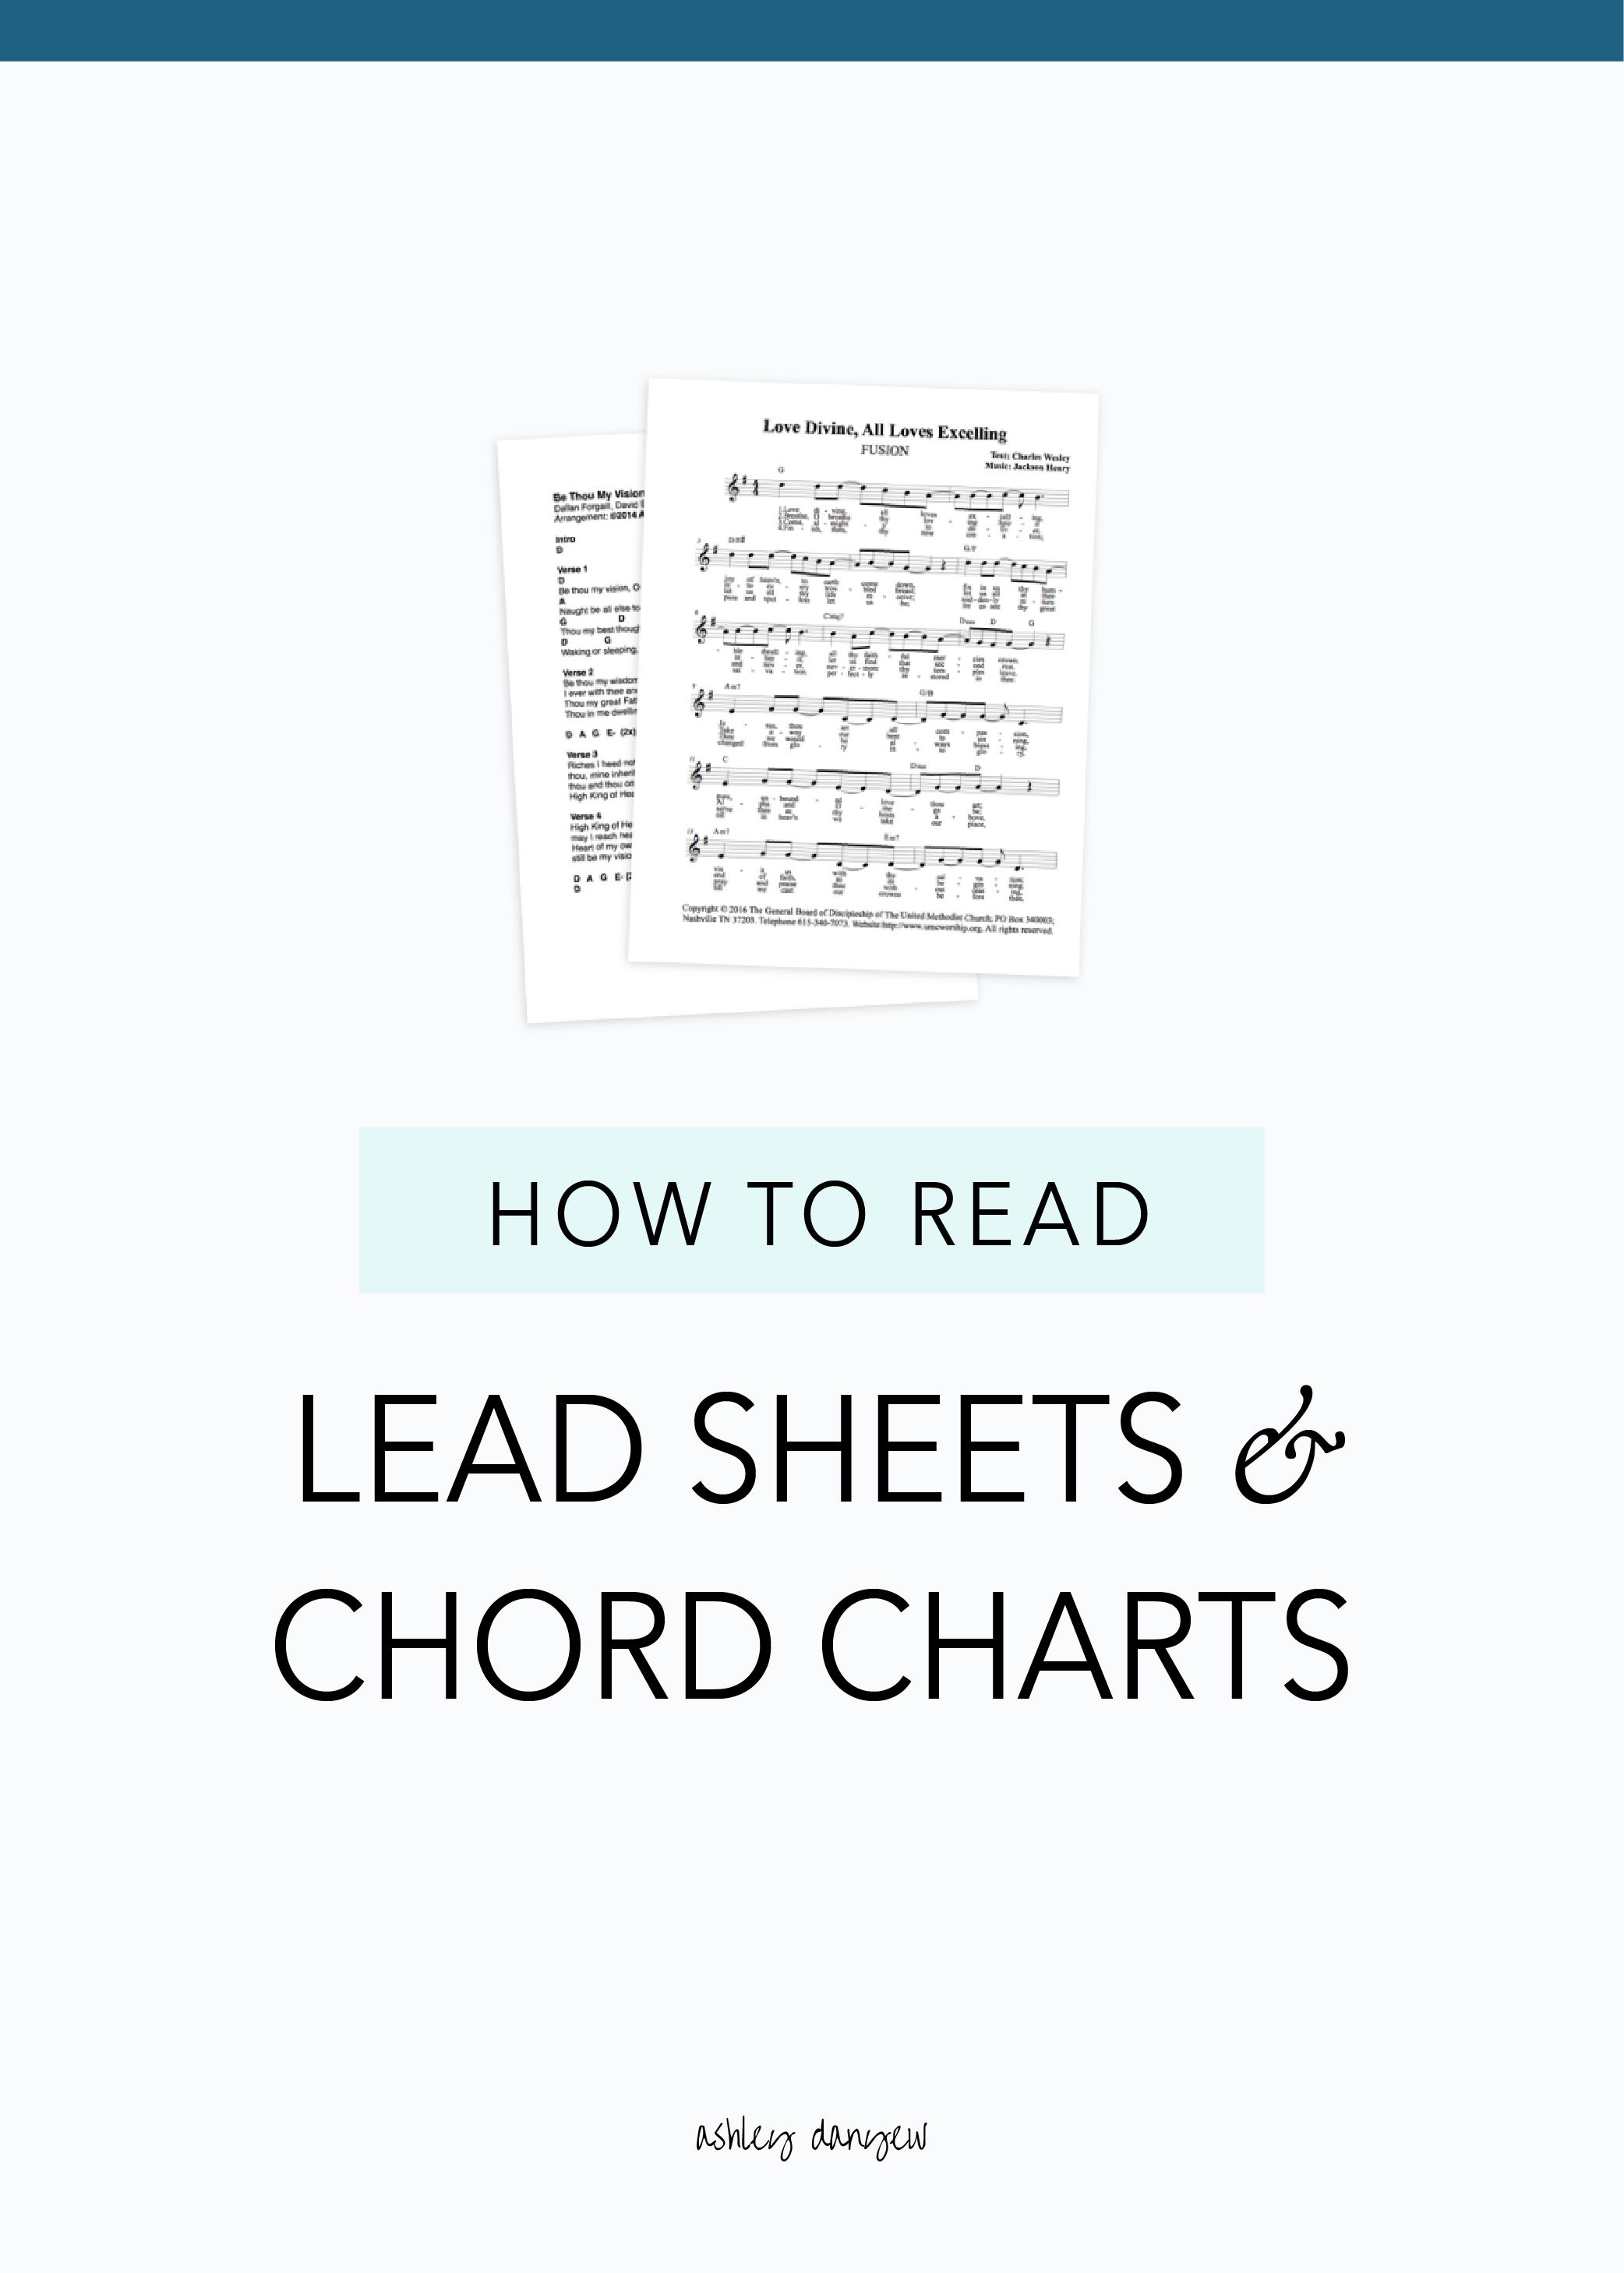 How to Read Lead Sheets and Chord Charts